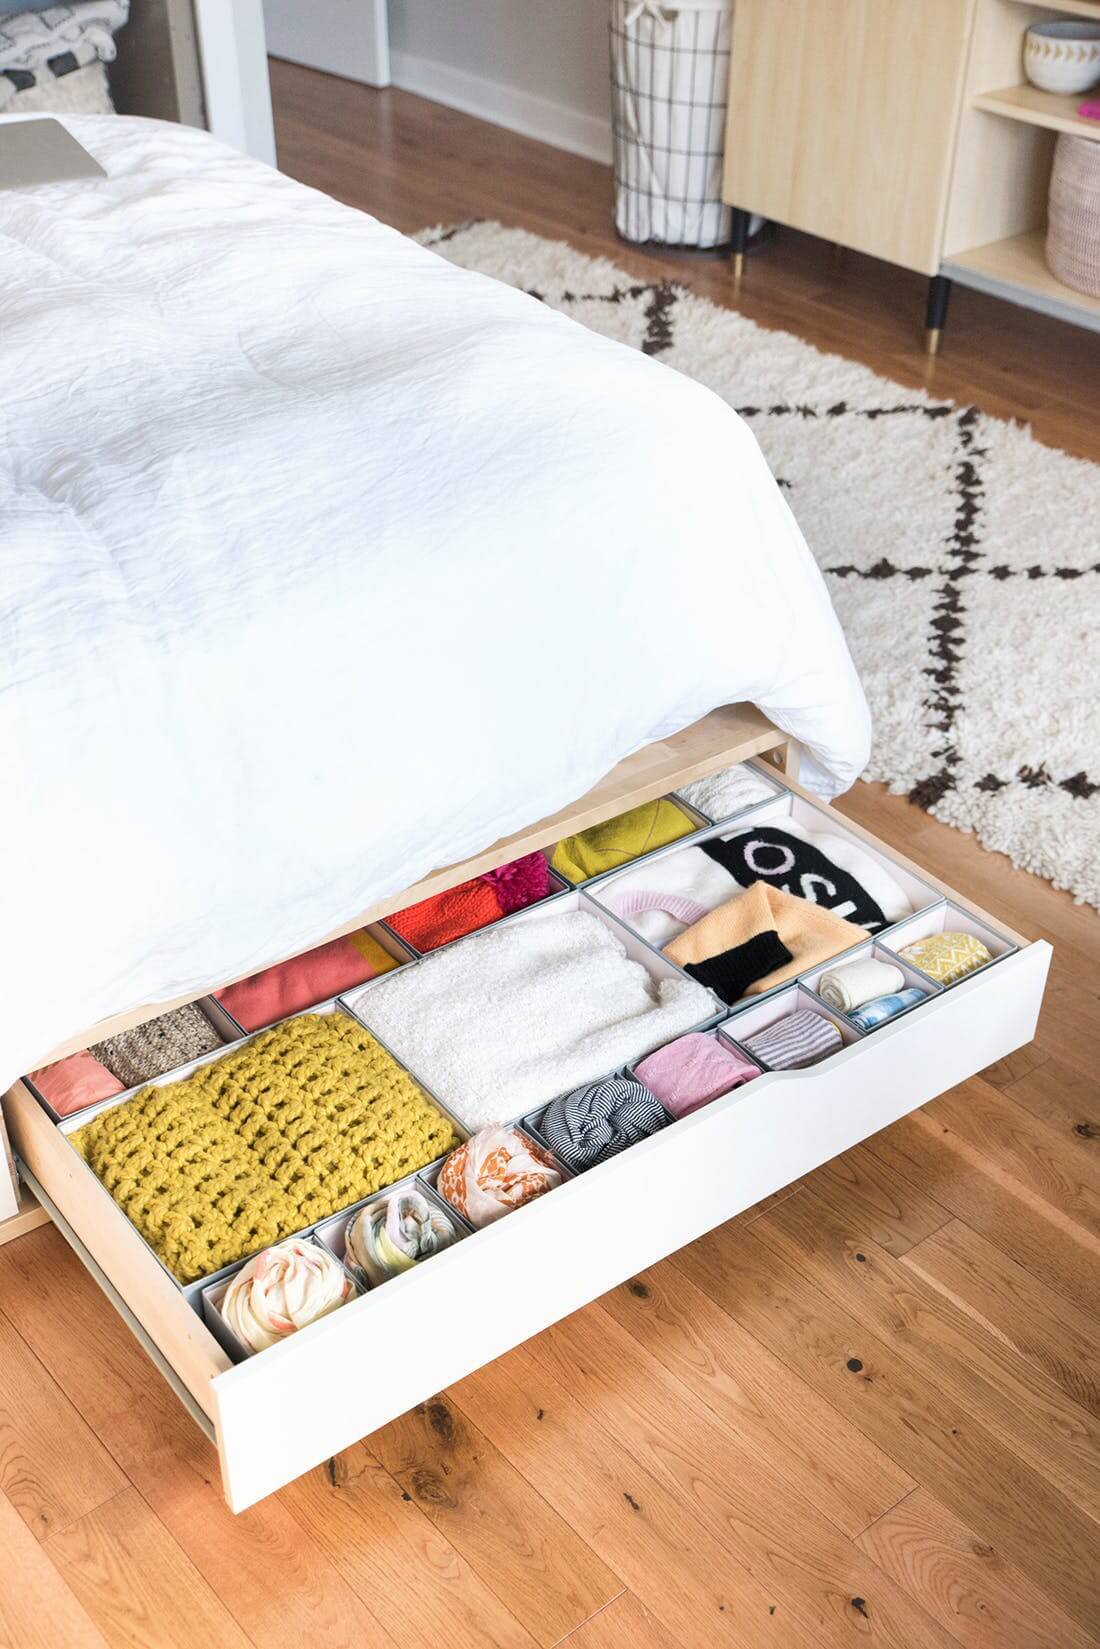 Under The Bed Pull Out Drawers